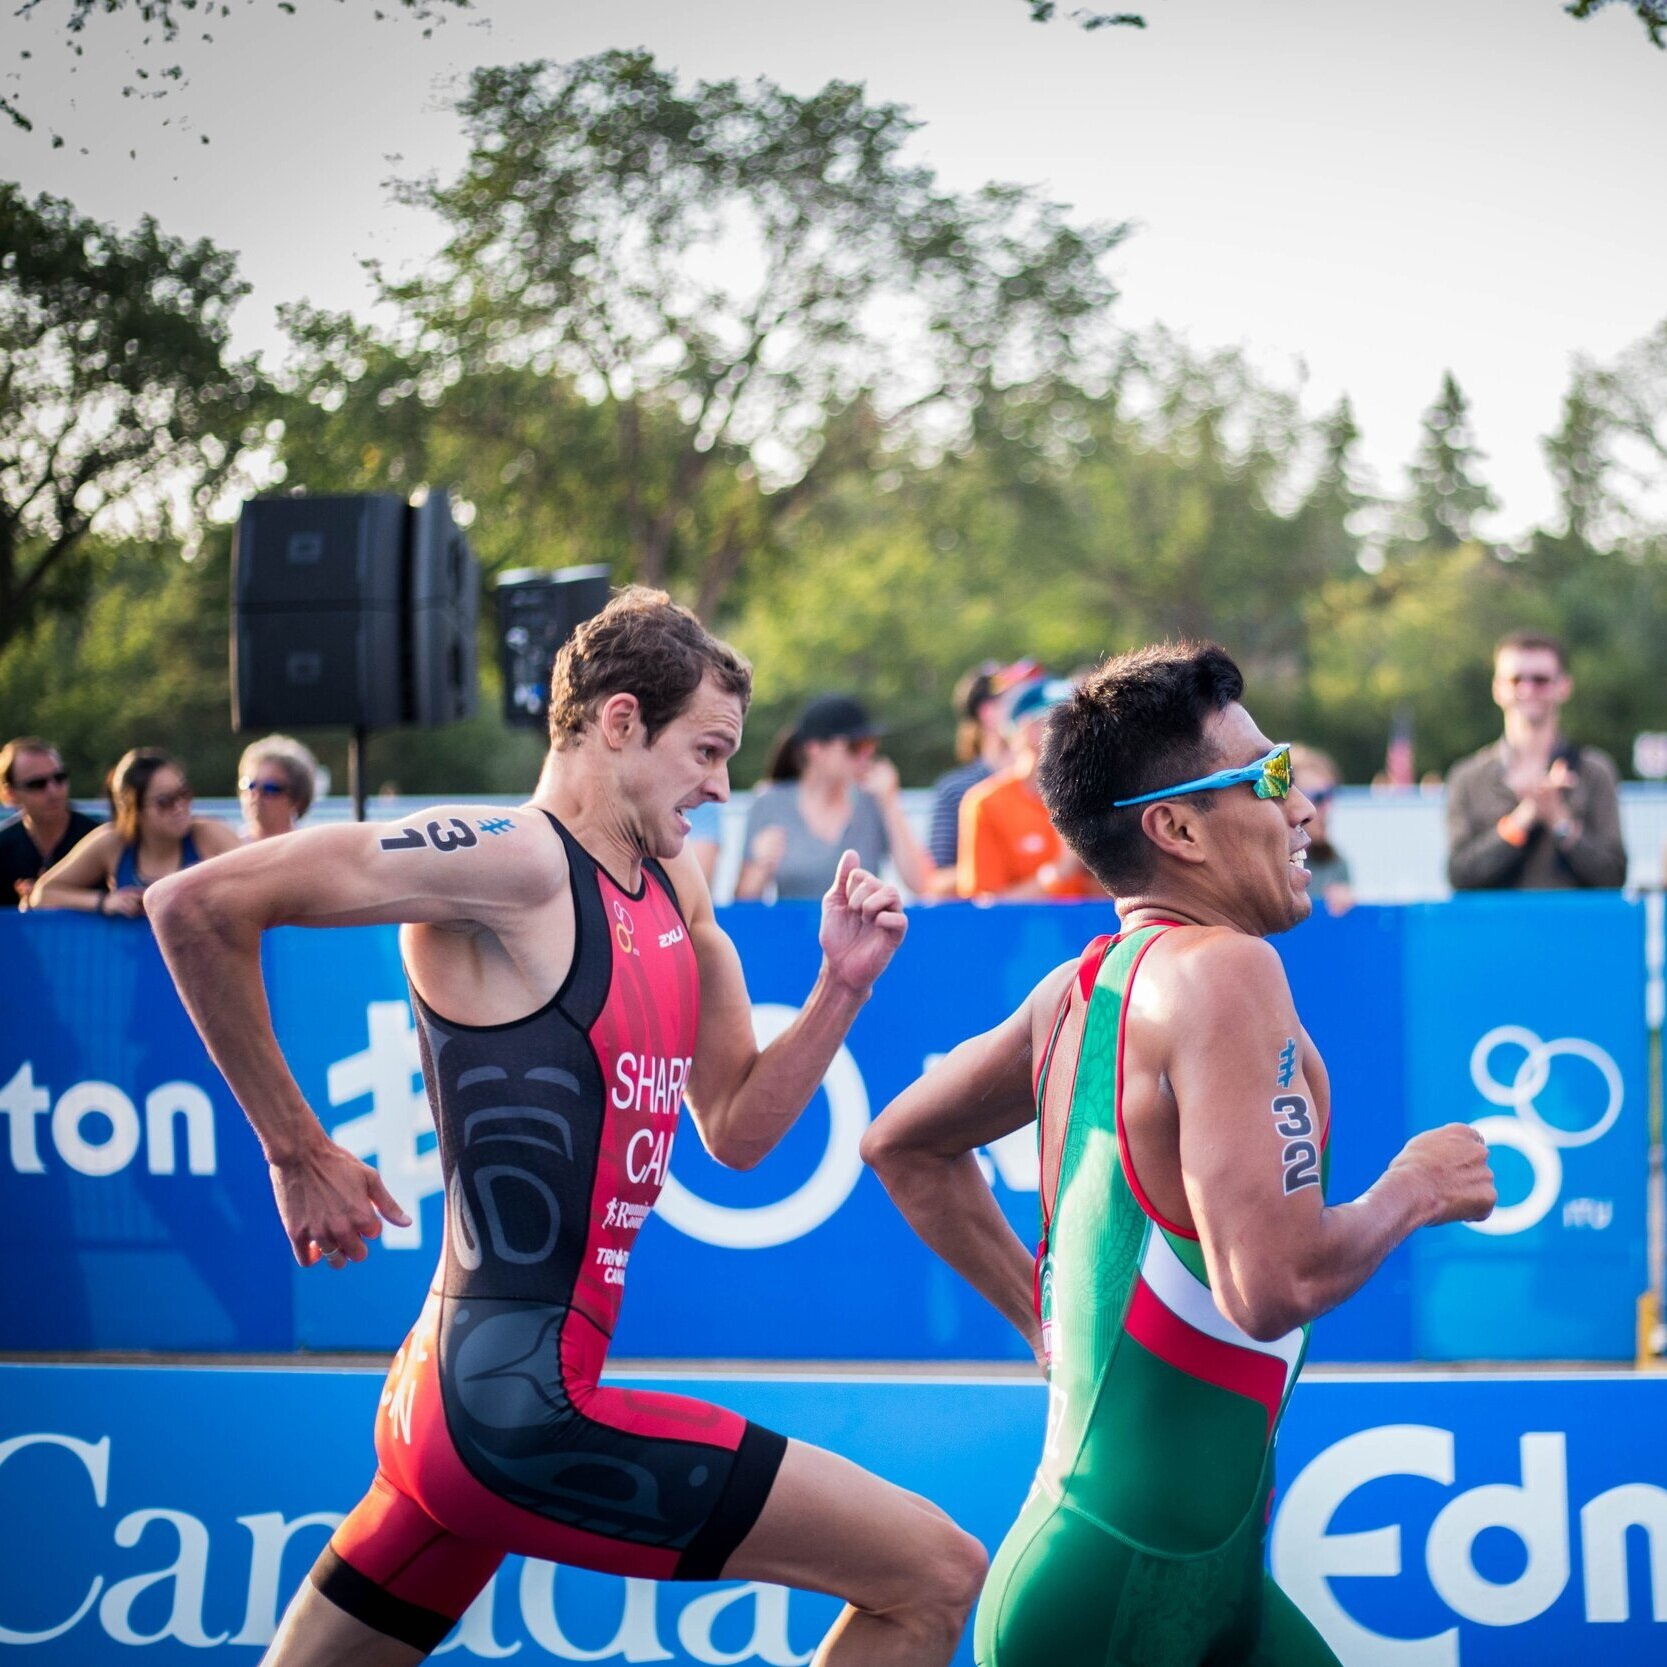 triathlon - Triathlon is swimming, cycling and running put together one after another as a single race event.Next year it's the A J Bell World Triathlon in Leeds.